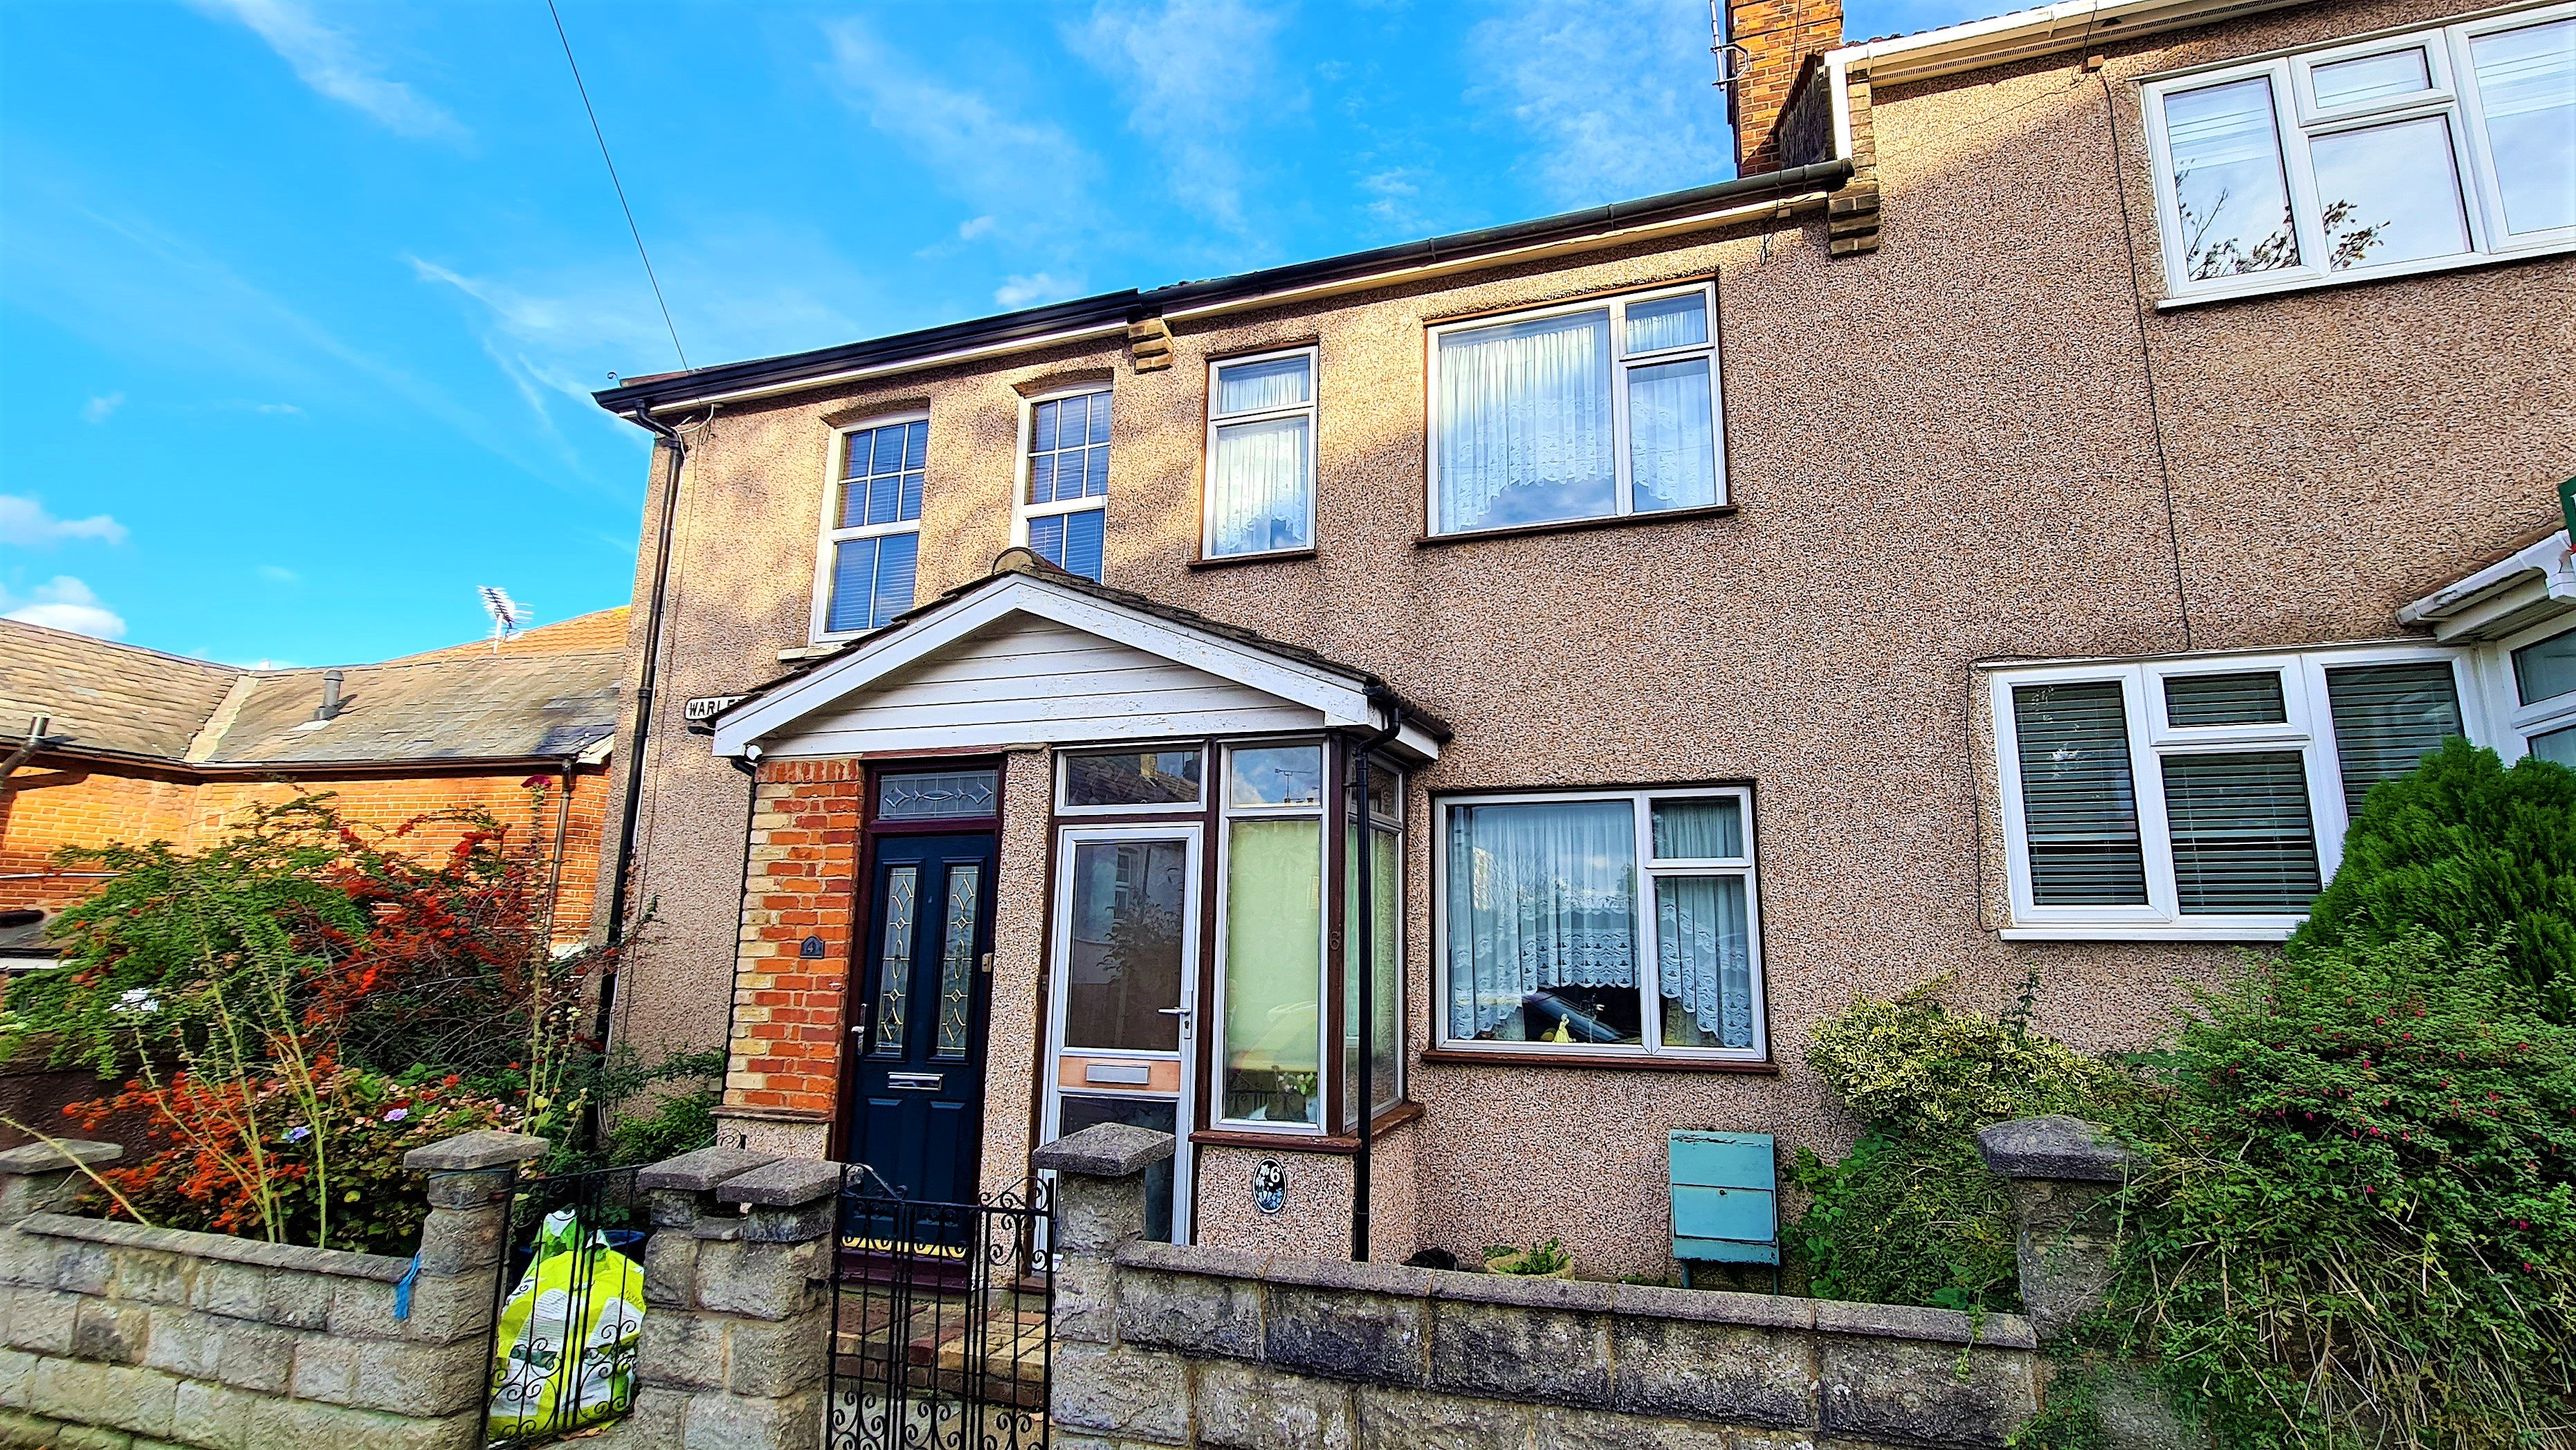 2 bed terraced house for sale in Warley Mount, Brentwood, CM14